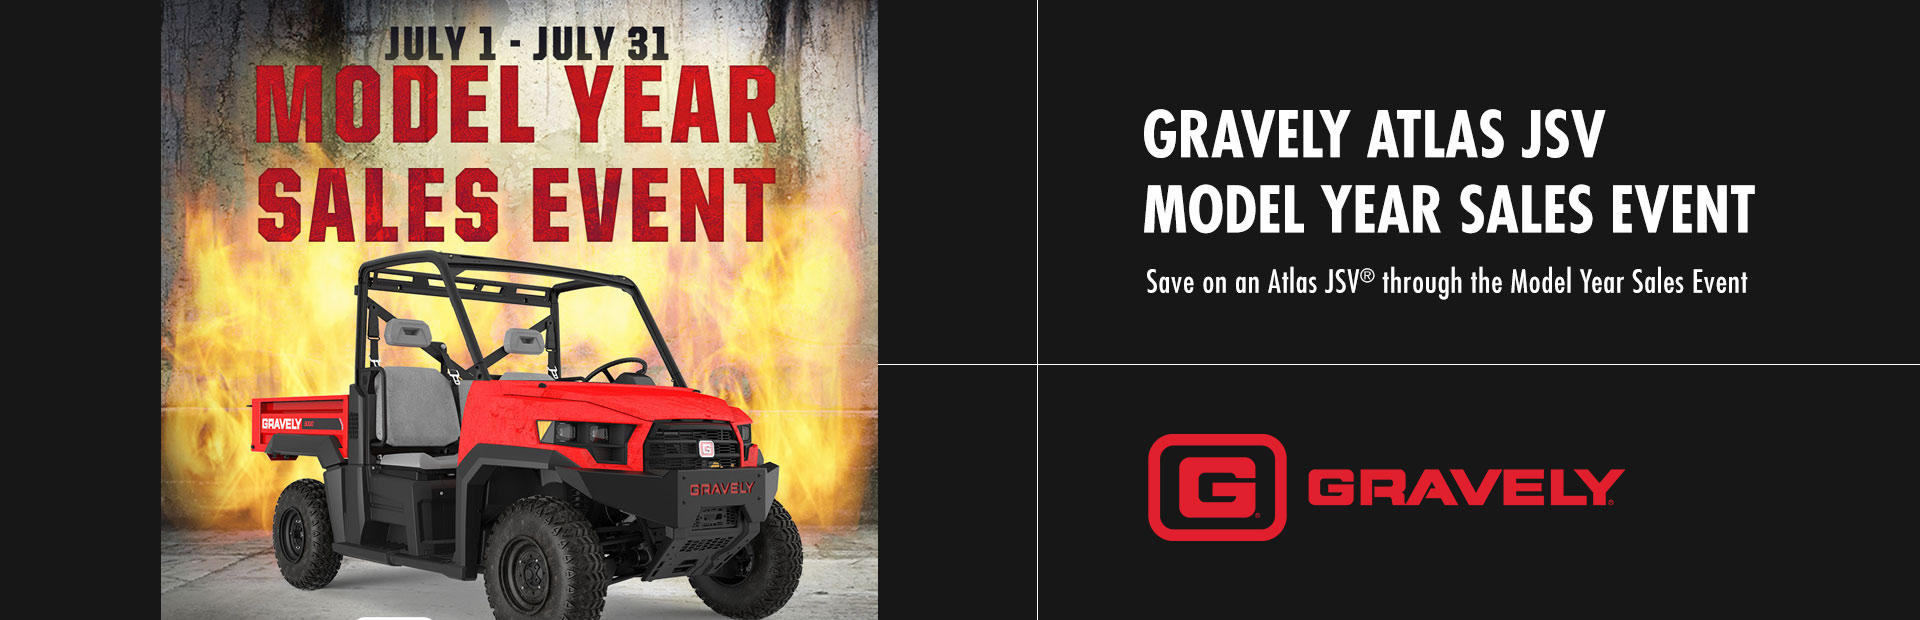 Gravely: Gravely Atlas JSV Summer Sales Event